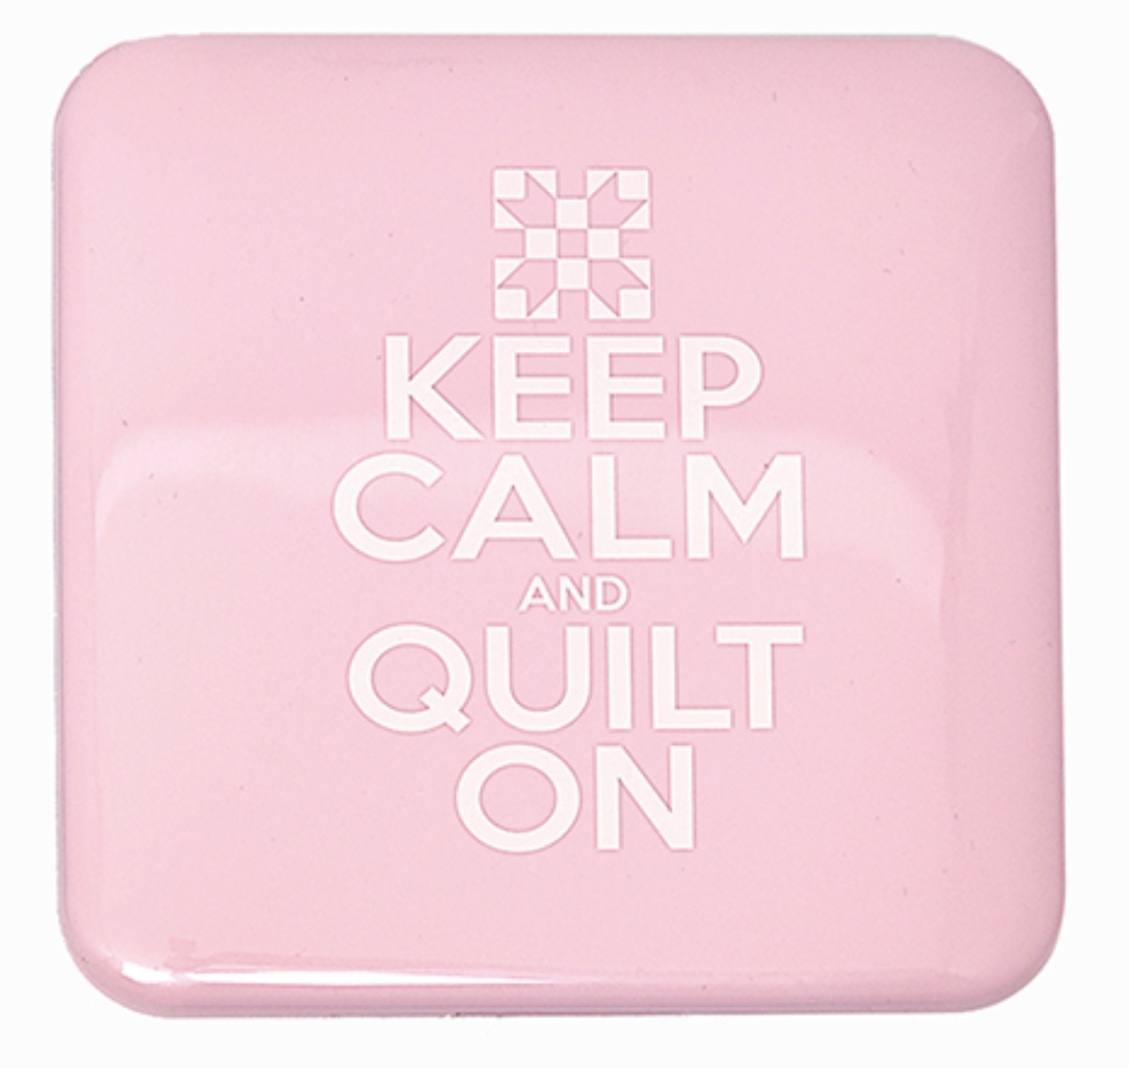 Antibacterial Face Mask Case - Pink - Keep Calm and Quilt On 56550